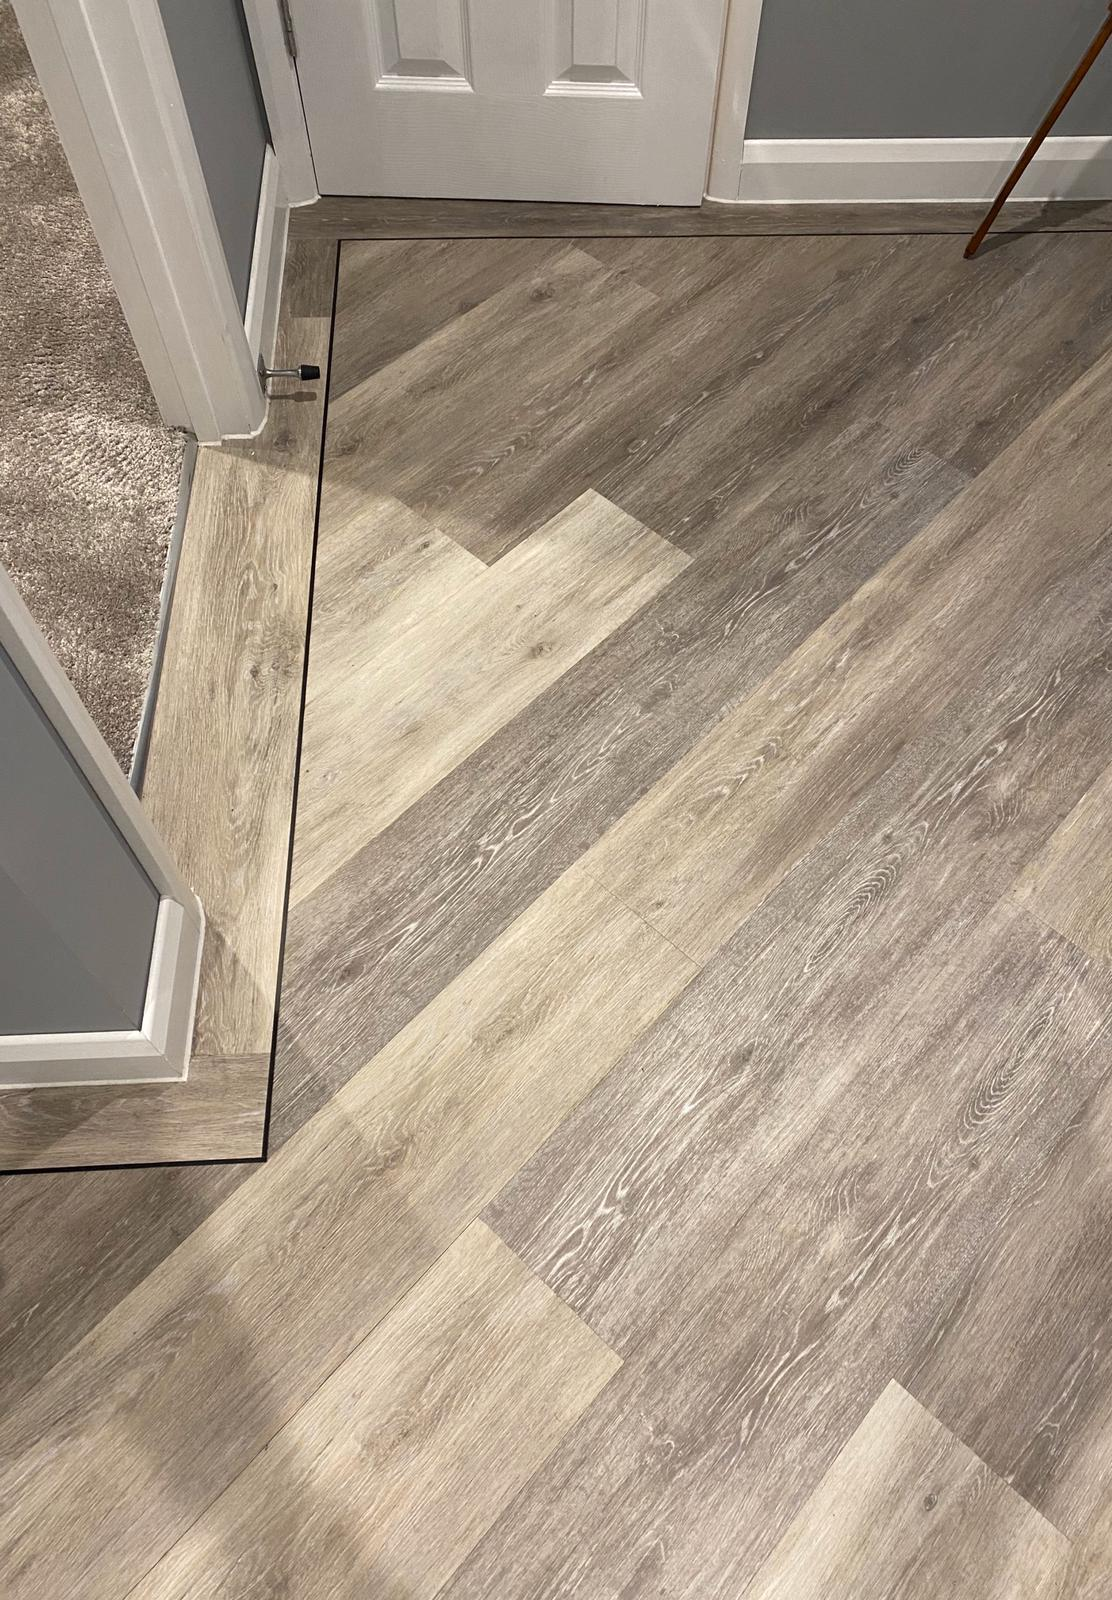 Brief: To supply & install Amtico Signature Lime Washed Wood Luxury Vinyl Tile 3